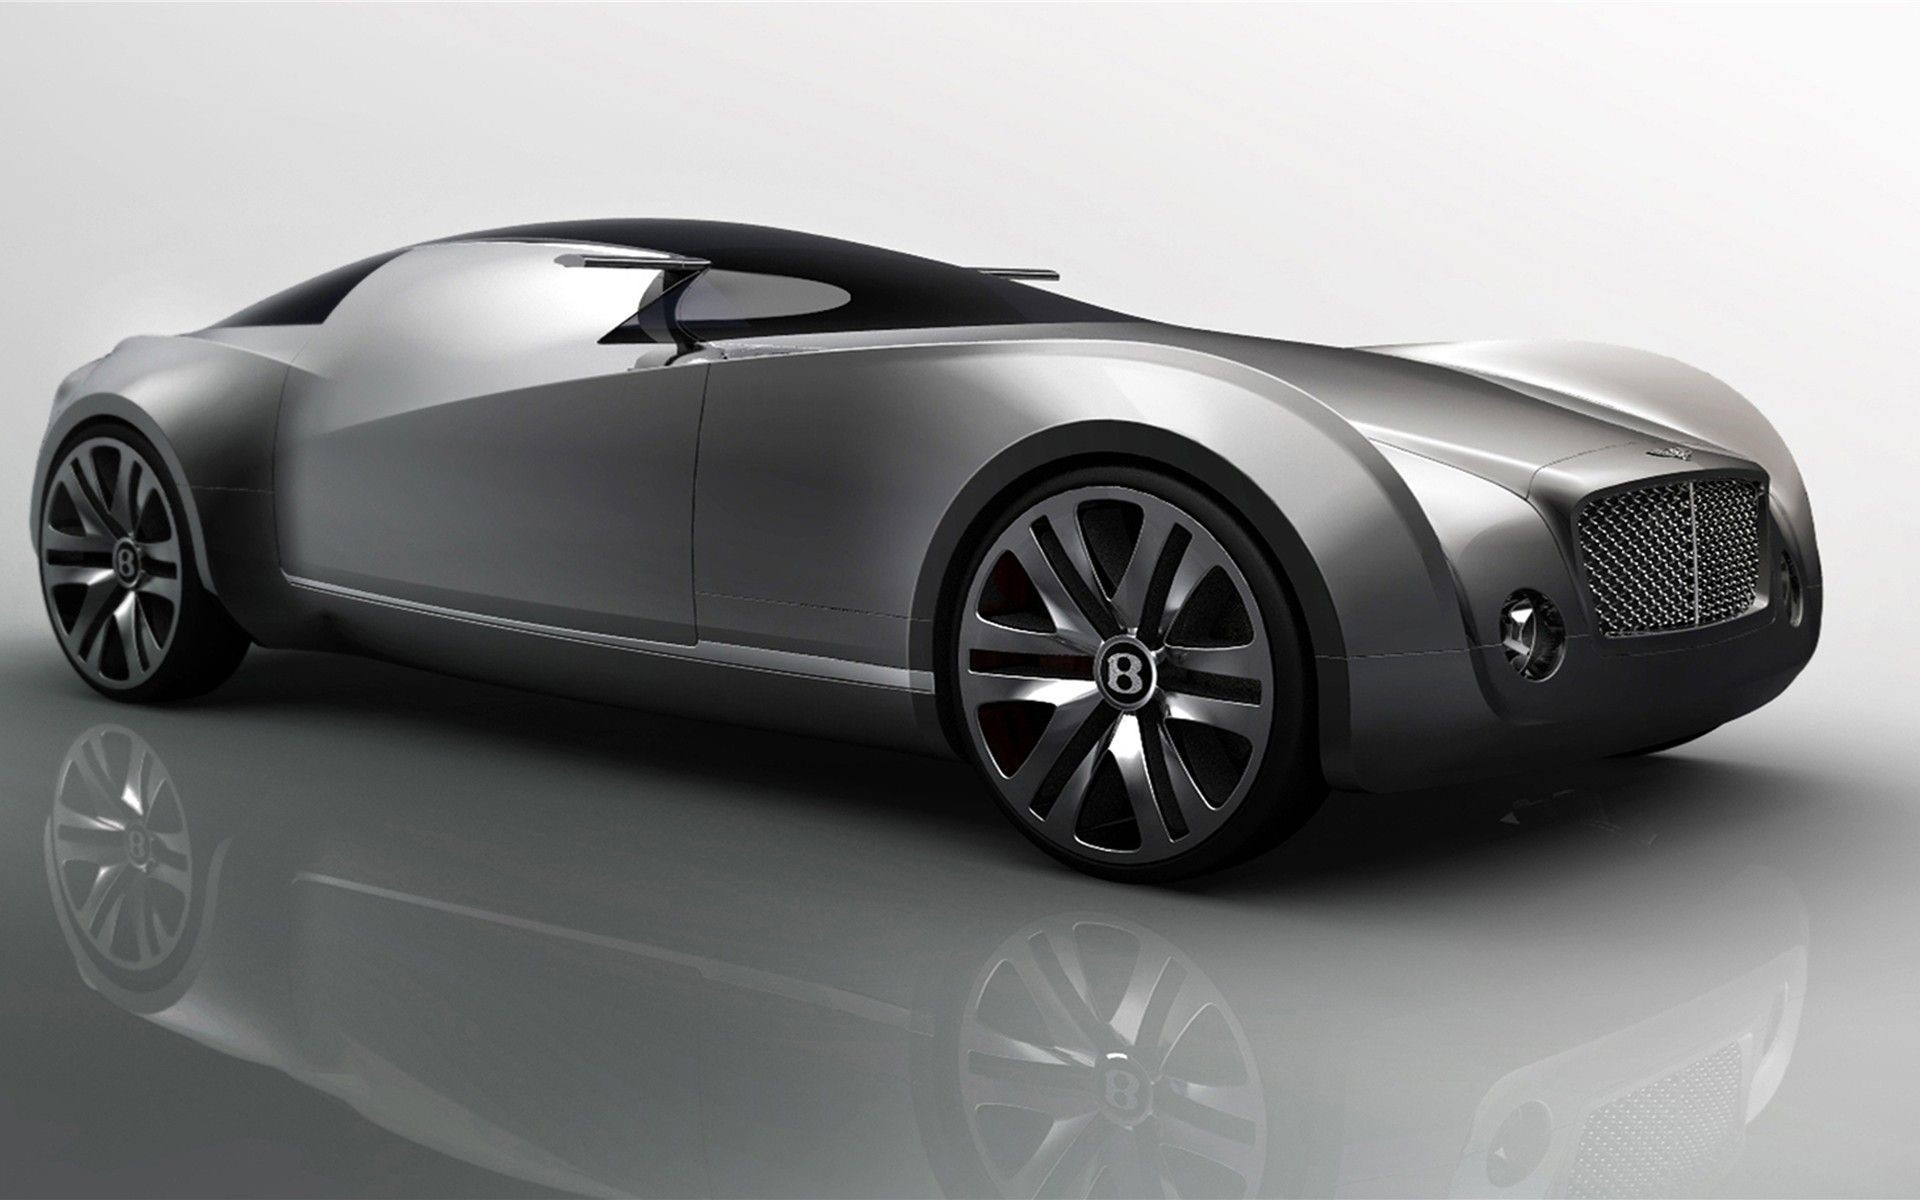 Future Cars images